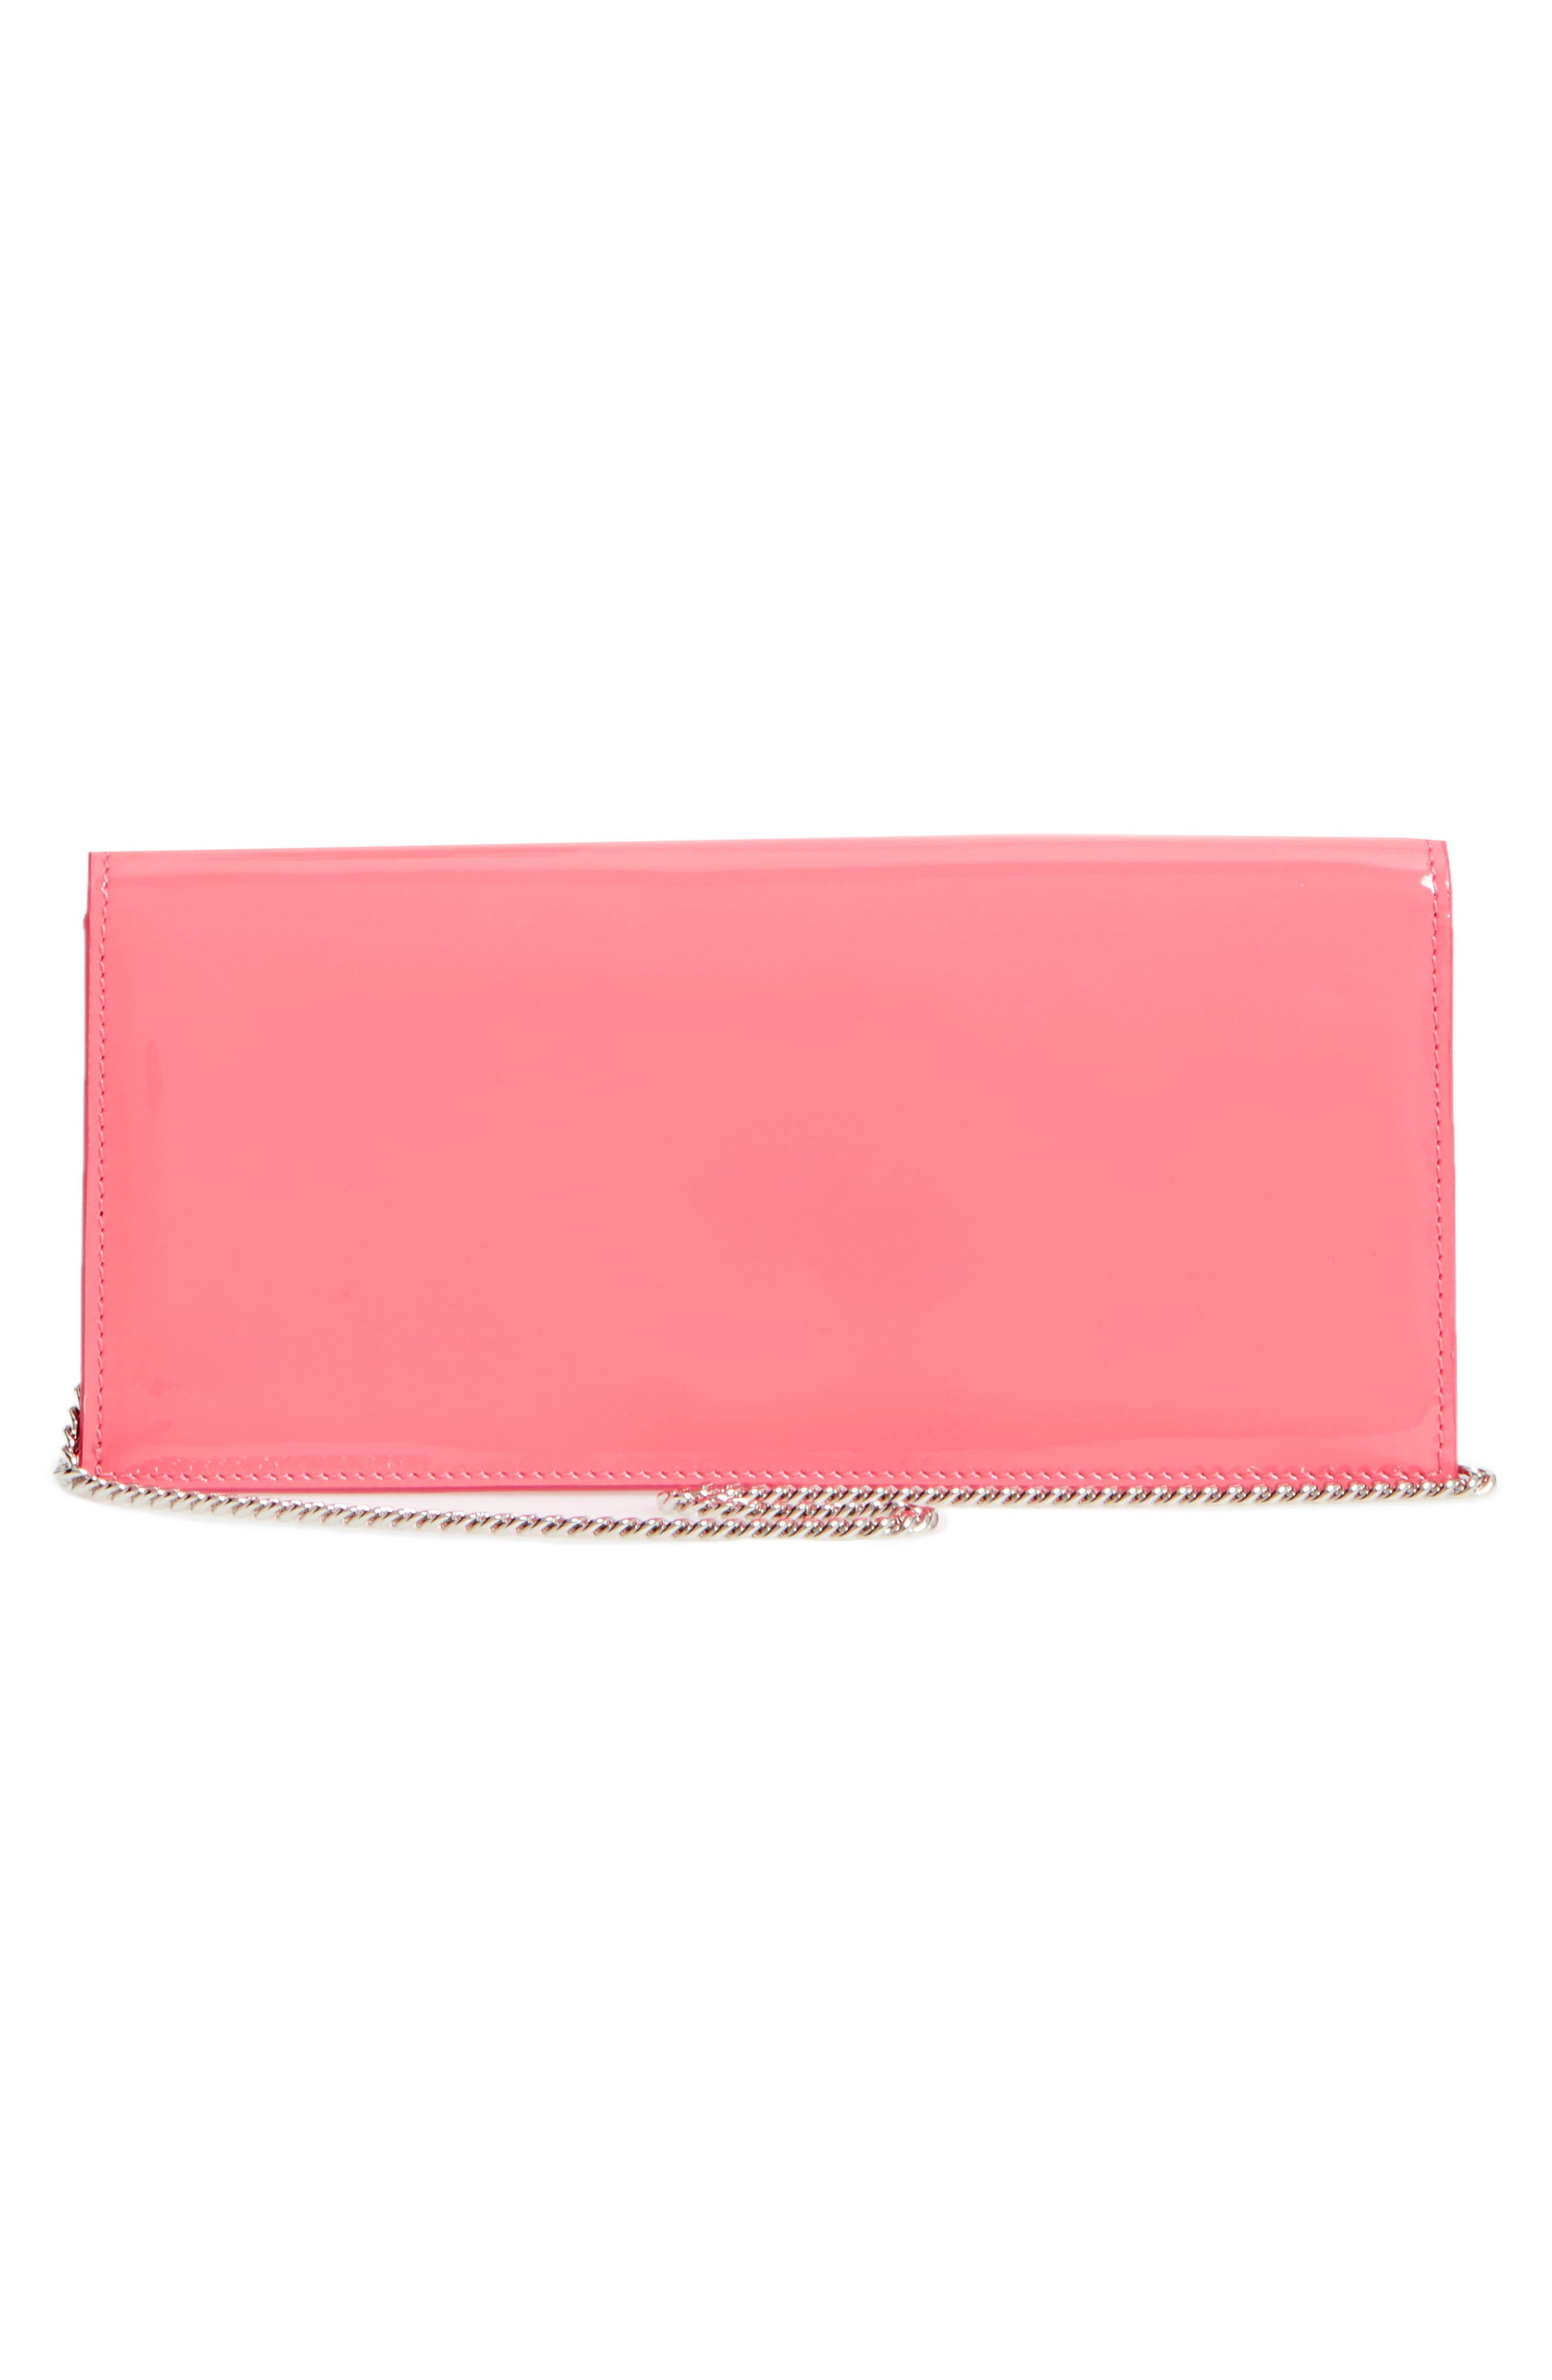 Alternate Image 3  - Jimmy Choo Fie Suede & Patent Leather Clutch